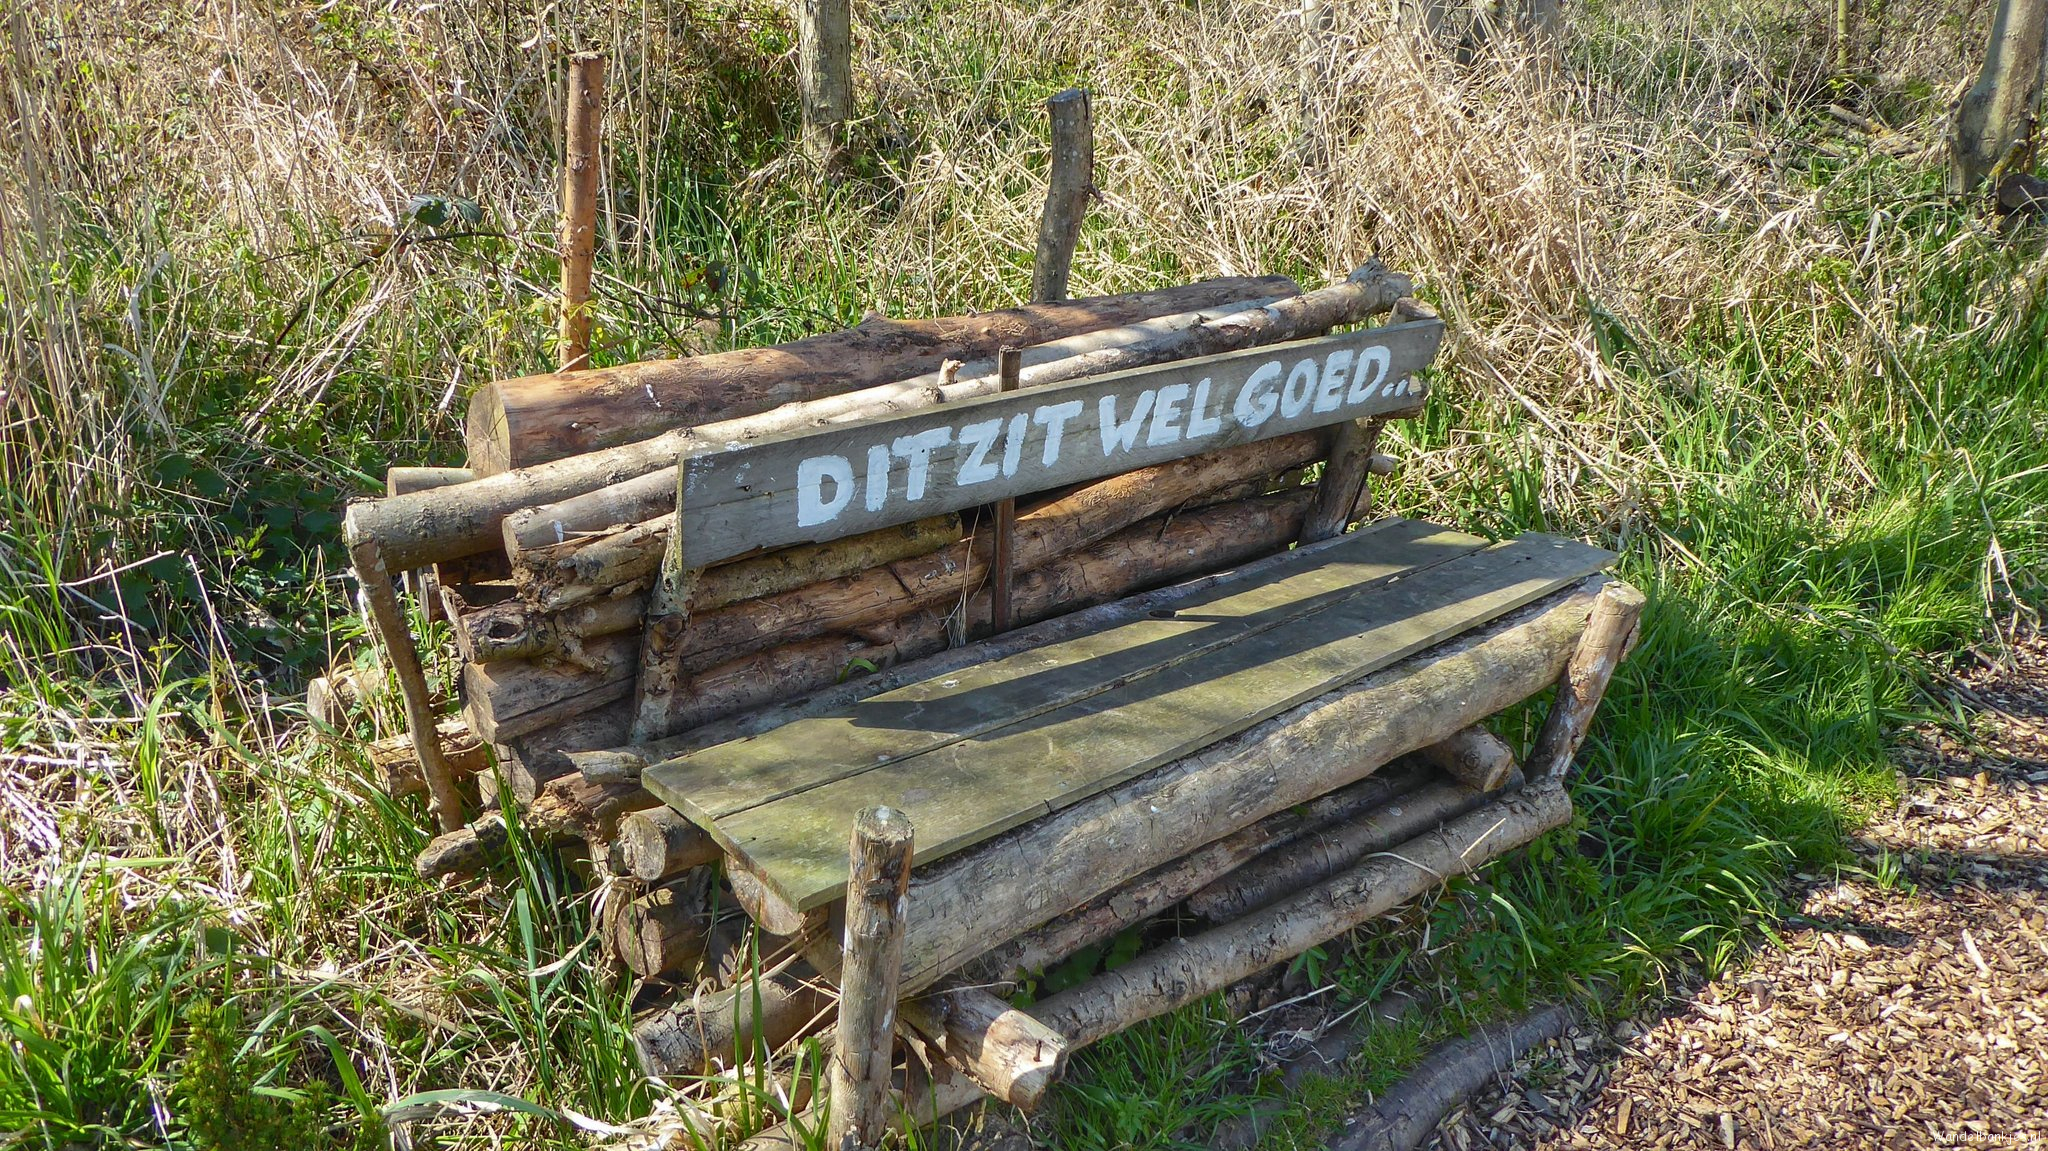 rt-davevanbrenk-walking bench-lisse-boot pass-walking benches-https-t-co-giqmq5ioo0